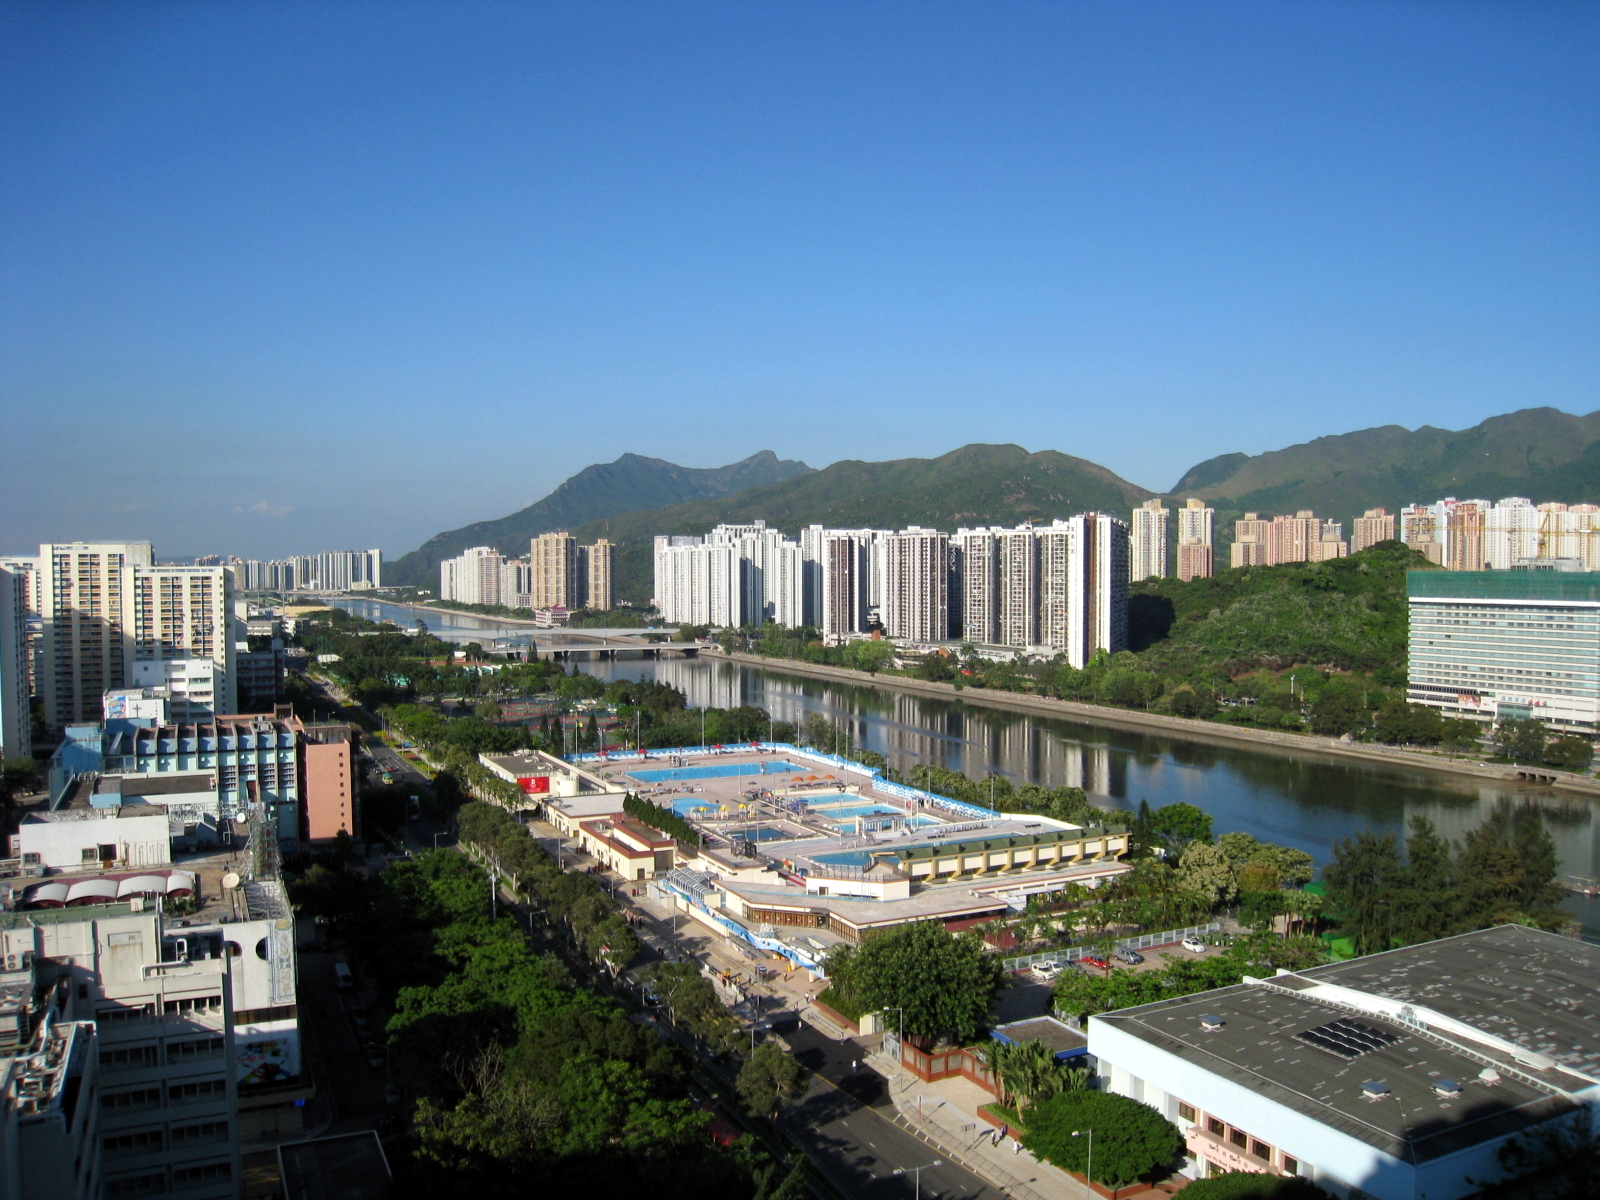 File:HK Shatin New Town 2008.jpg - Wikimedia Commons